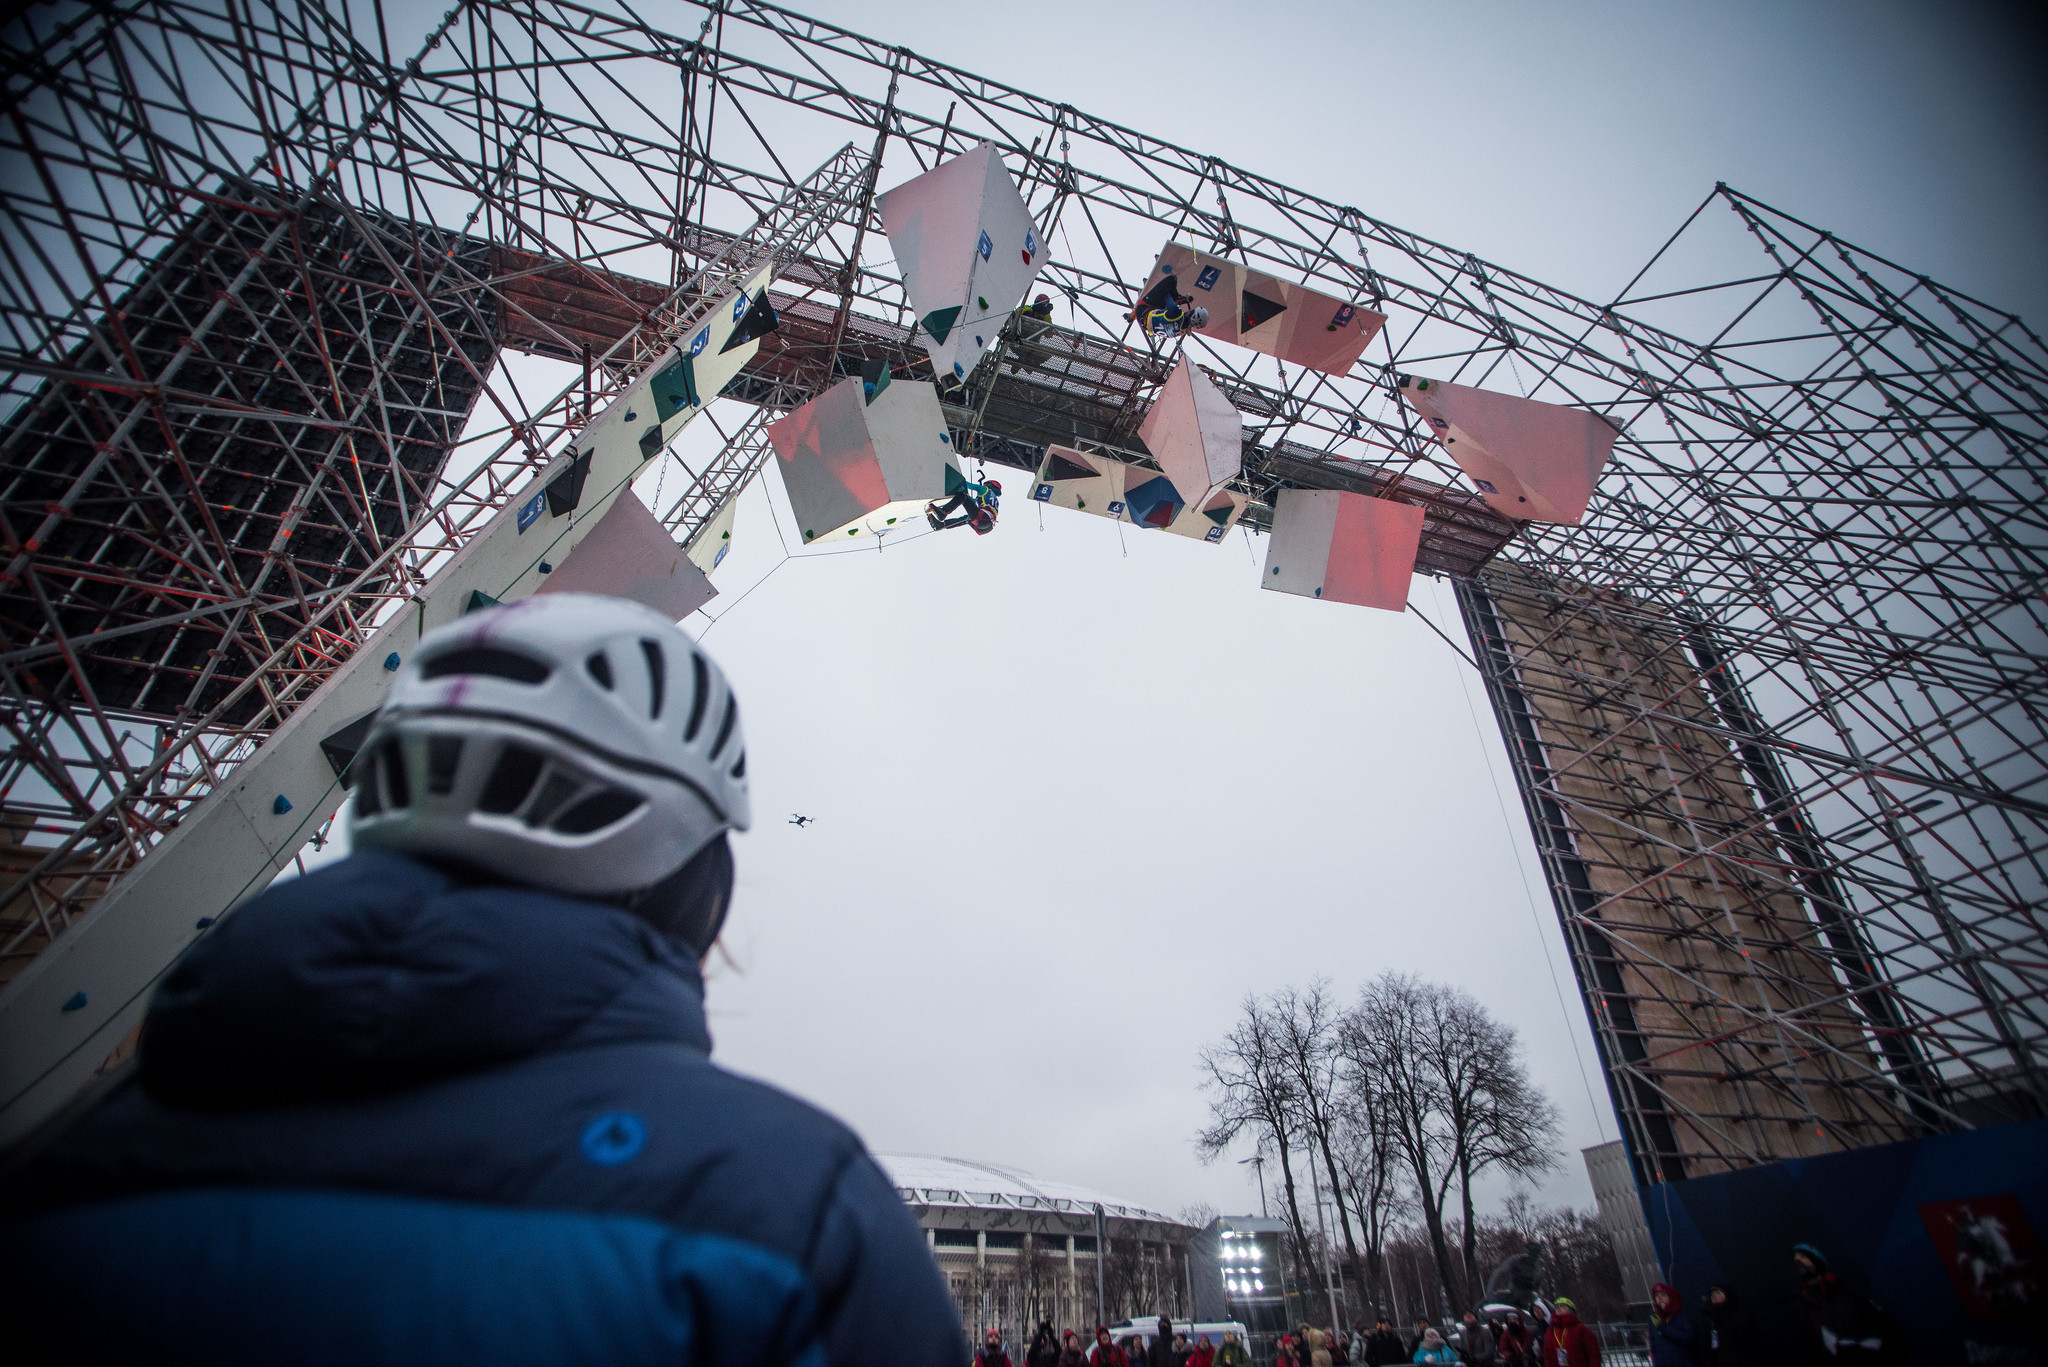 Russians clinch titles at Ice Climbing World Combined Championships